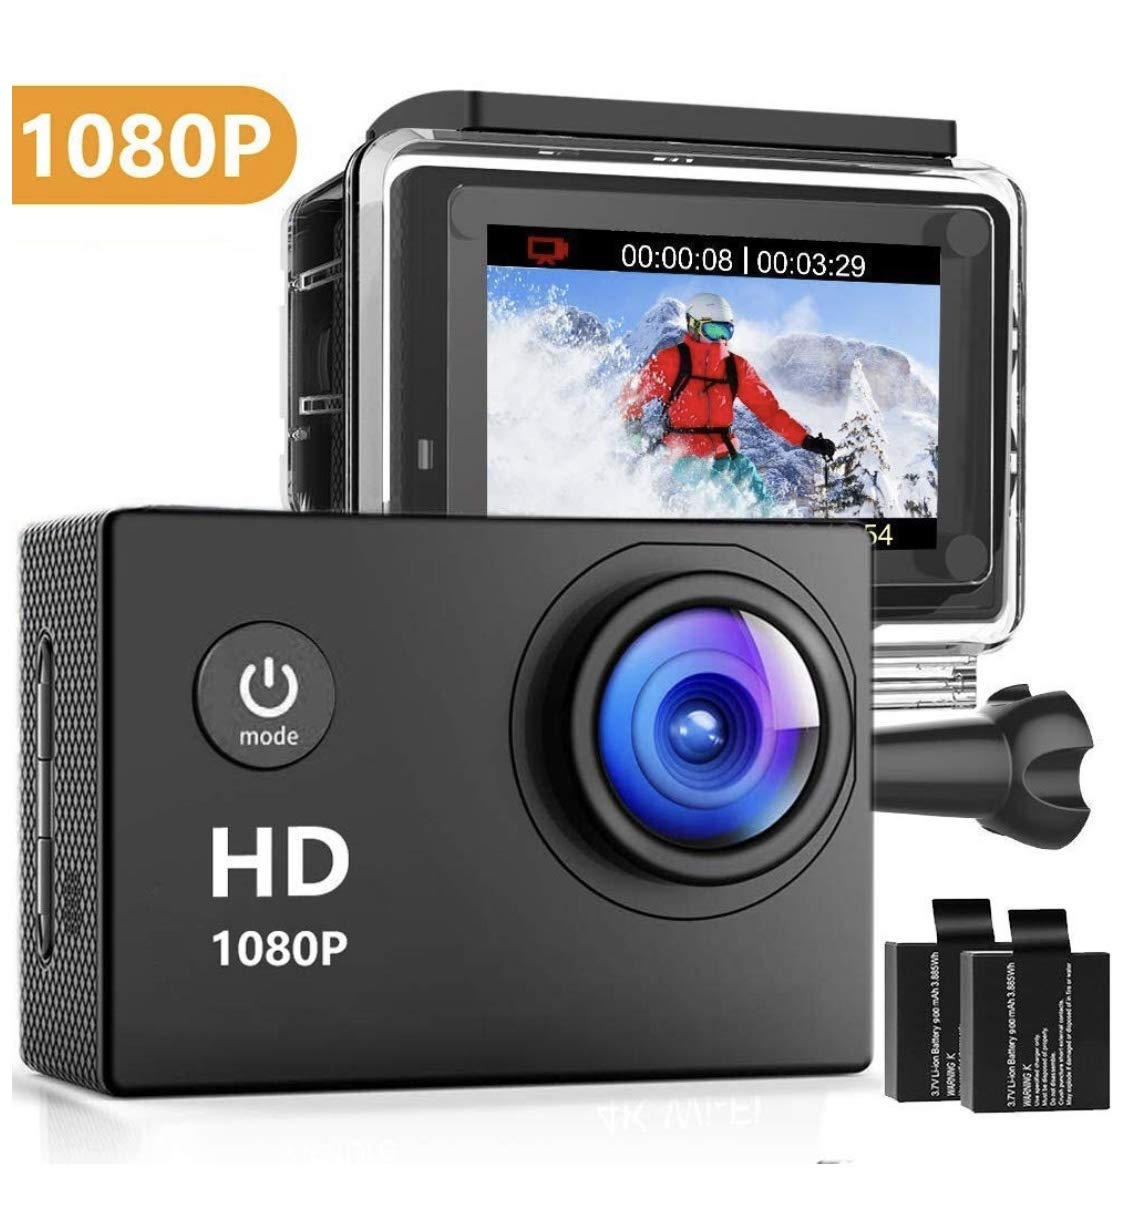 Oaixmn Action Camera 16MP 1080P Underwater Photography Cameras 140 Degree Ultra Wide Angle Lens with 2 Pcs Rechargeable Batteries and Mounting Accessories Kits - Black05 by Oaixmn